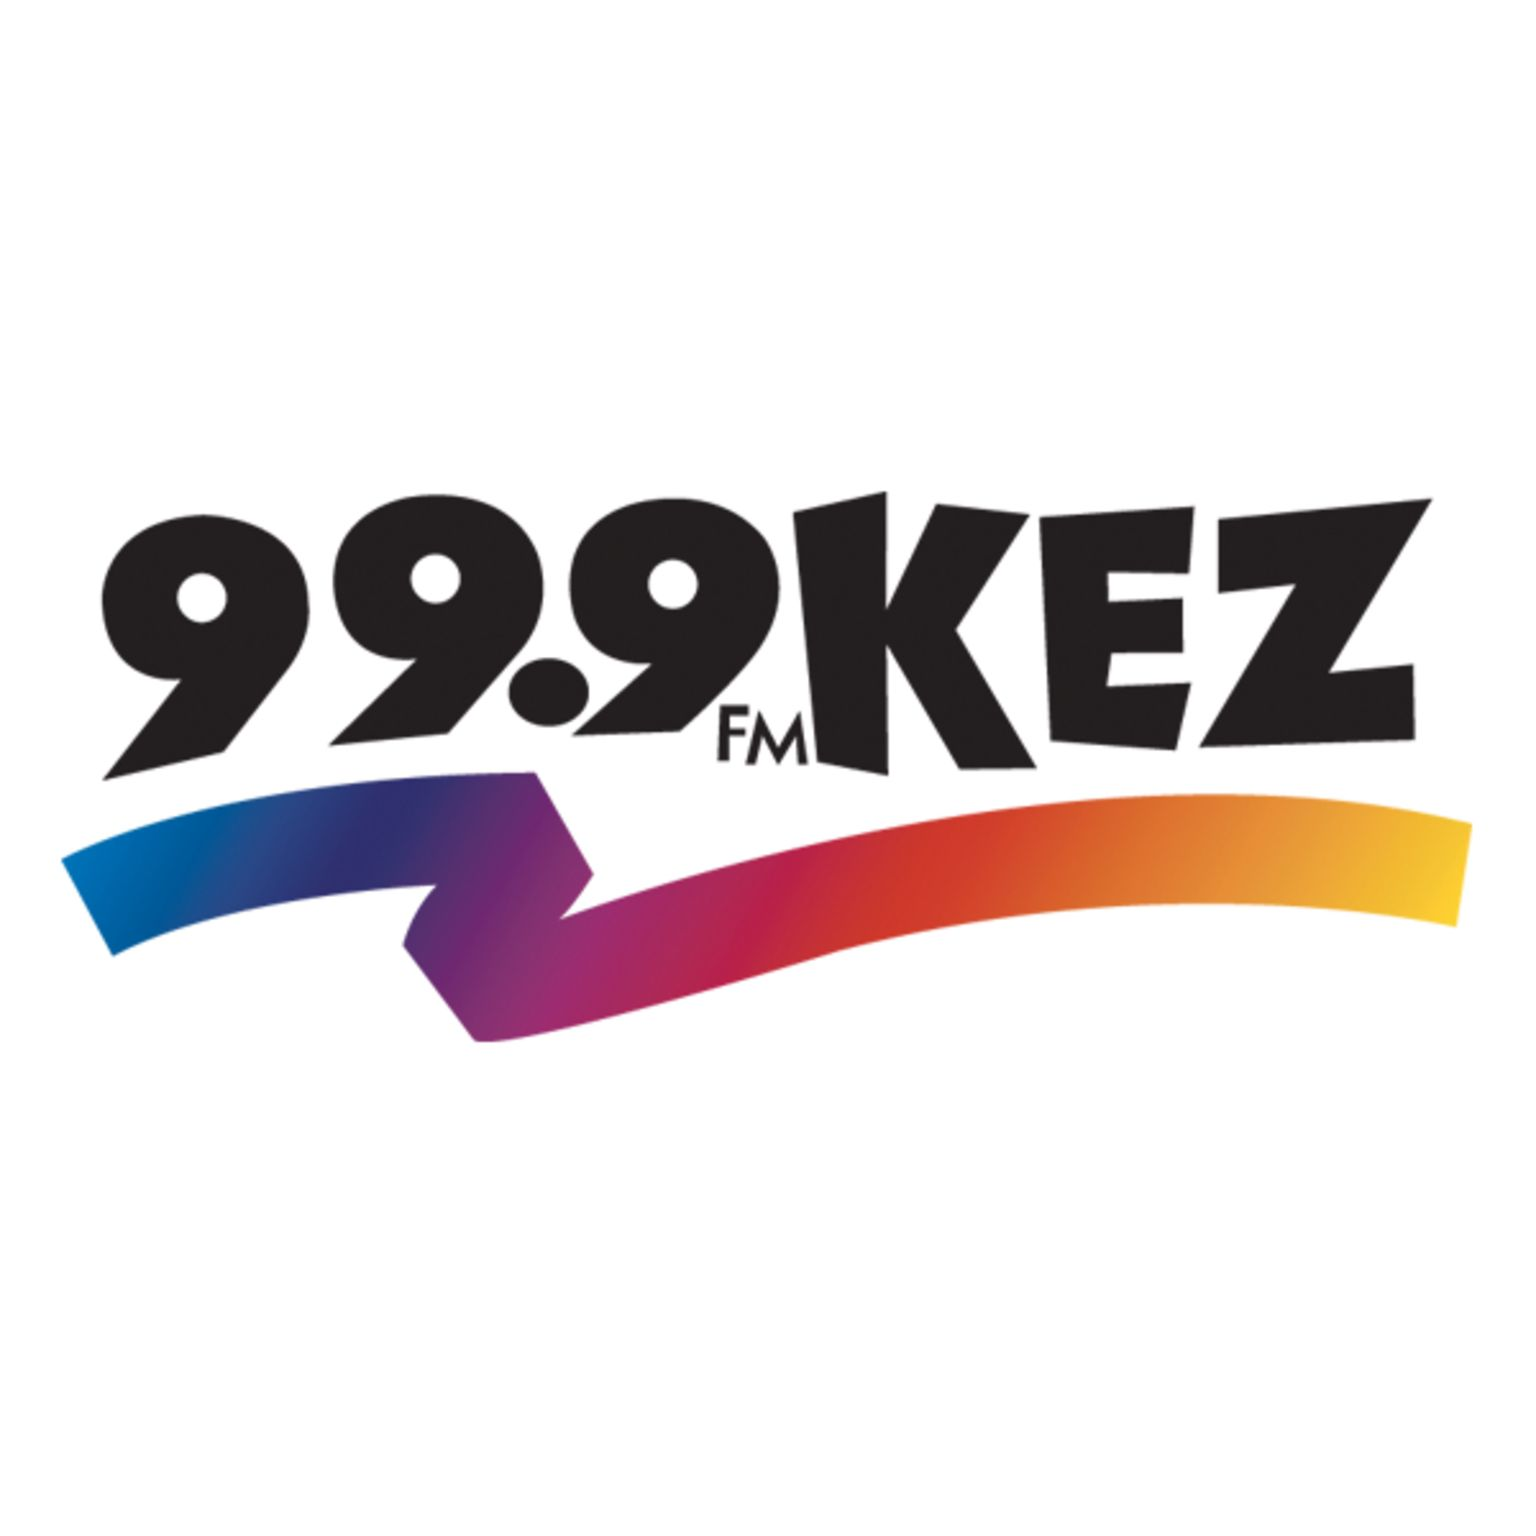 Iheartradio Christmas.I M Listening To 99 9 Kez Phoenix The Valley S Workday